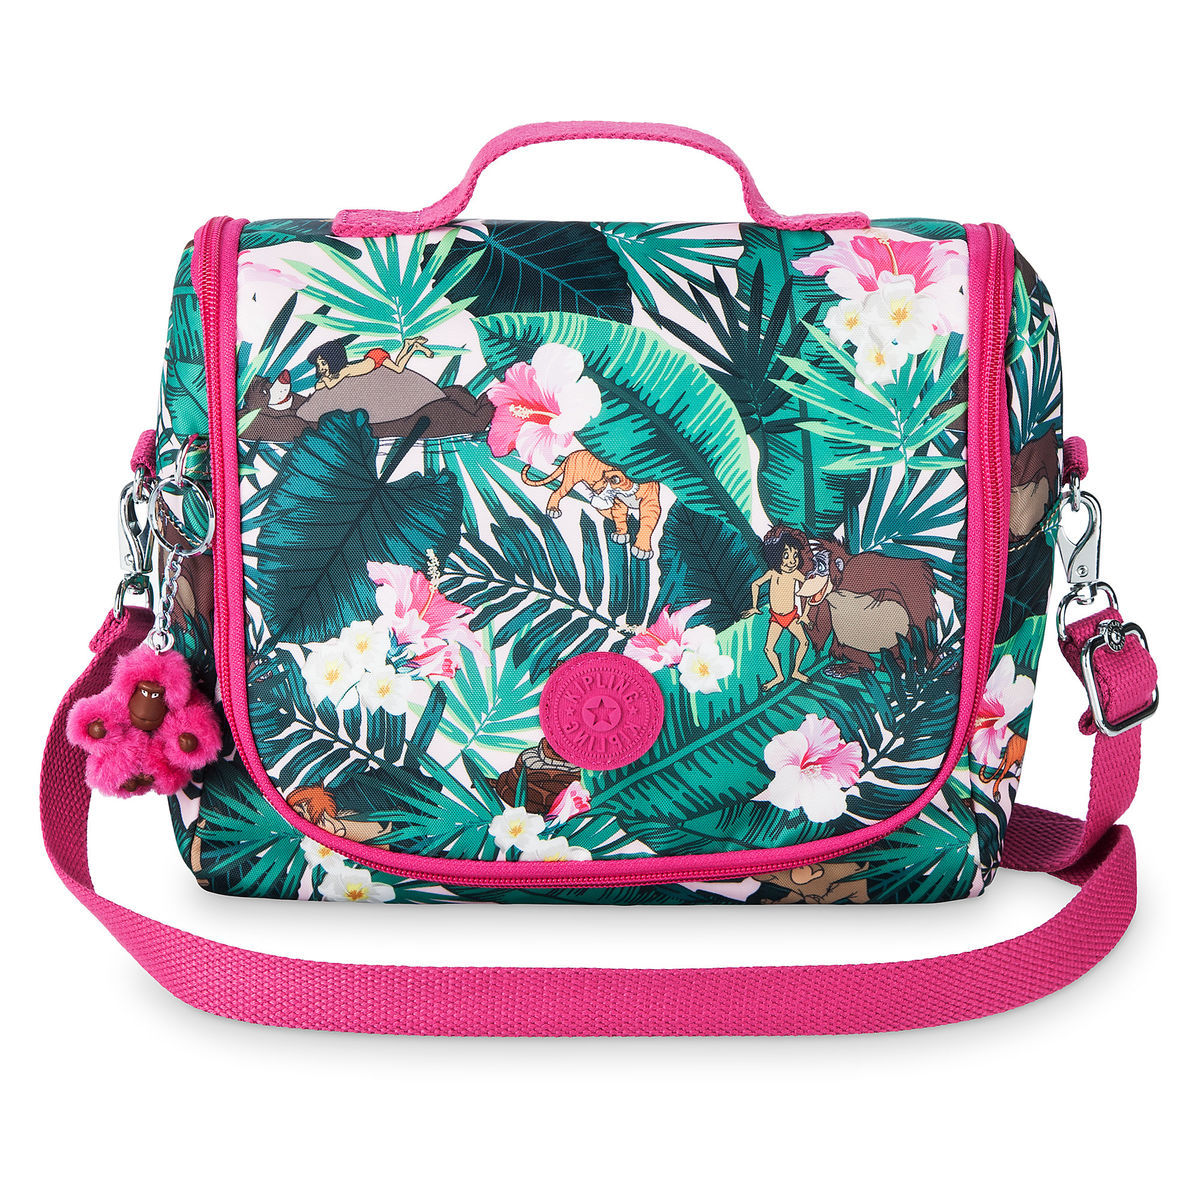 Product Image Of Jungle Book Lunch Tote By Kipling 1